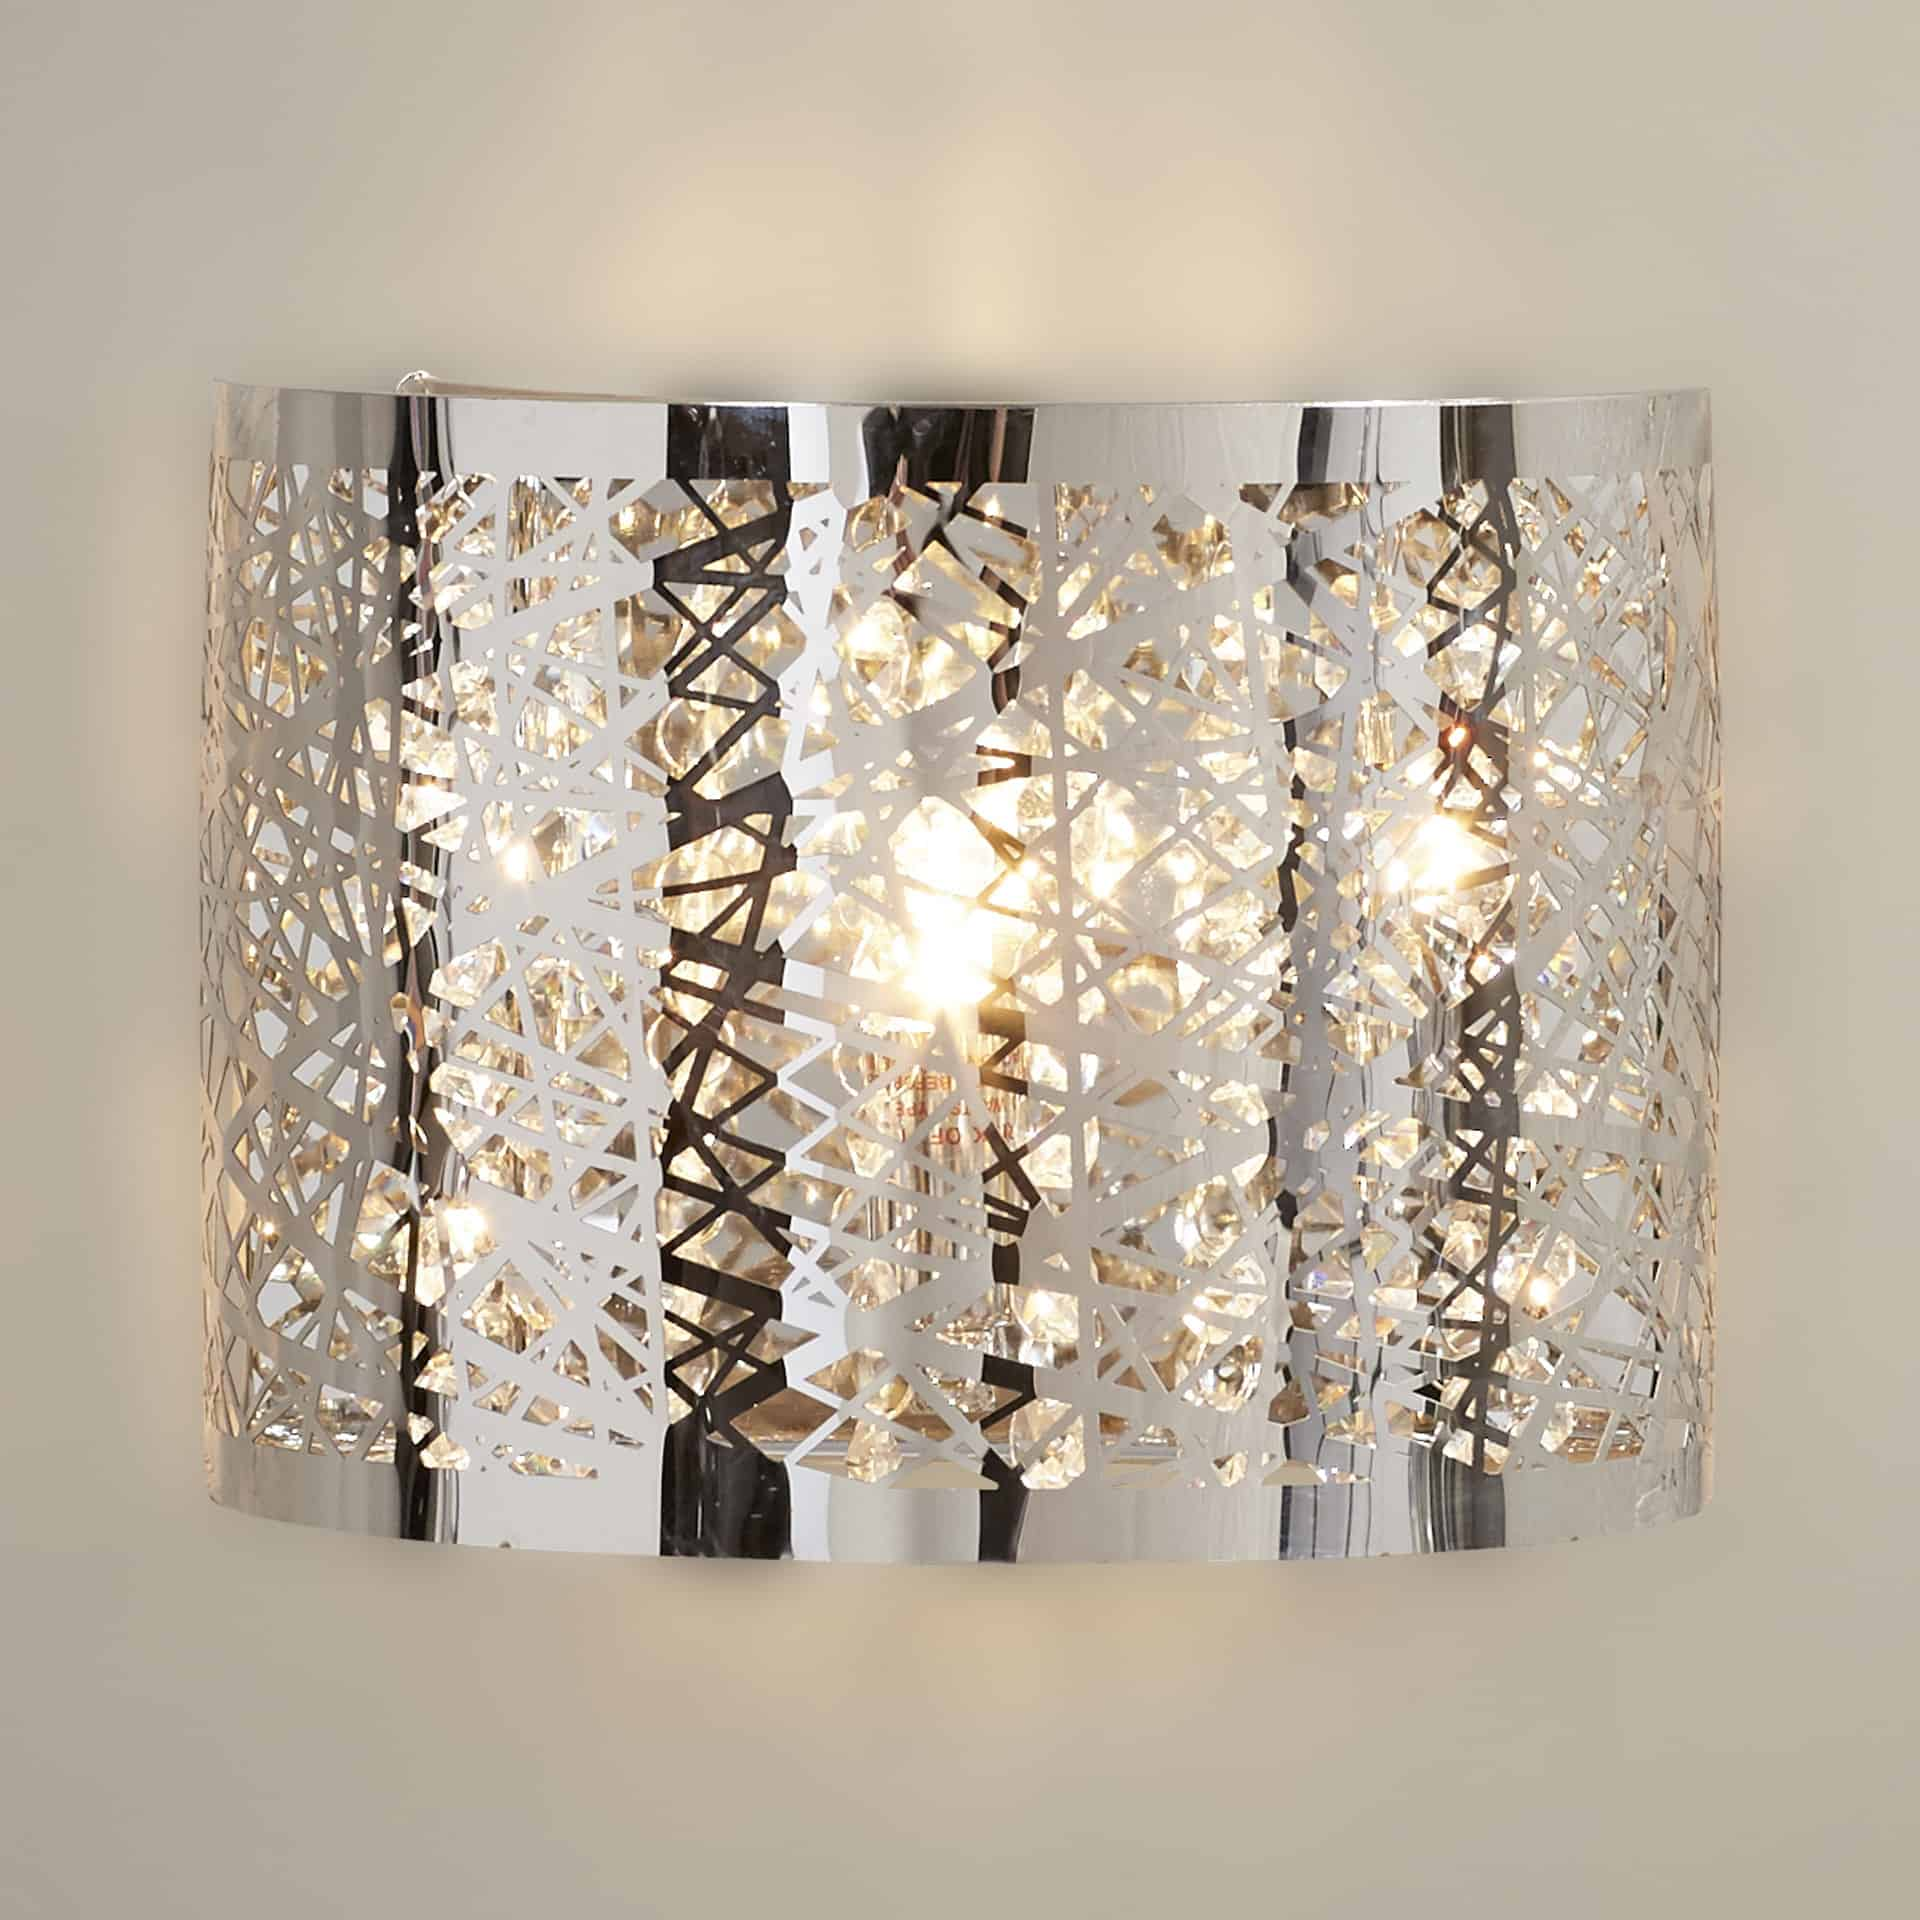 Stylish and Modern Wall Sconces Idea - Decoration Channel on Modern Wall Sconces Lighting id=67082